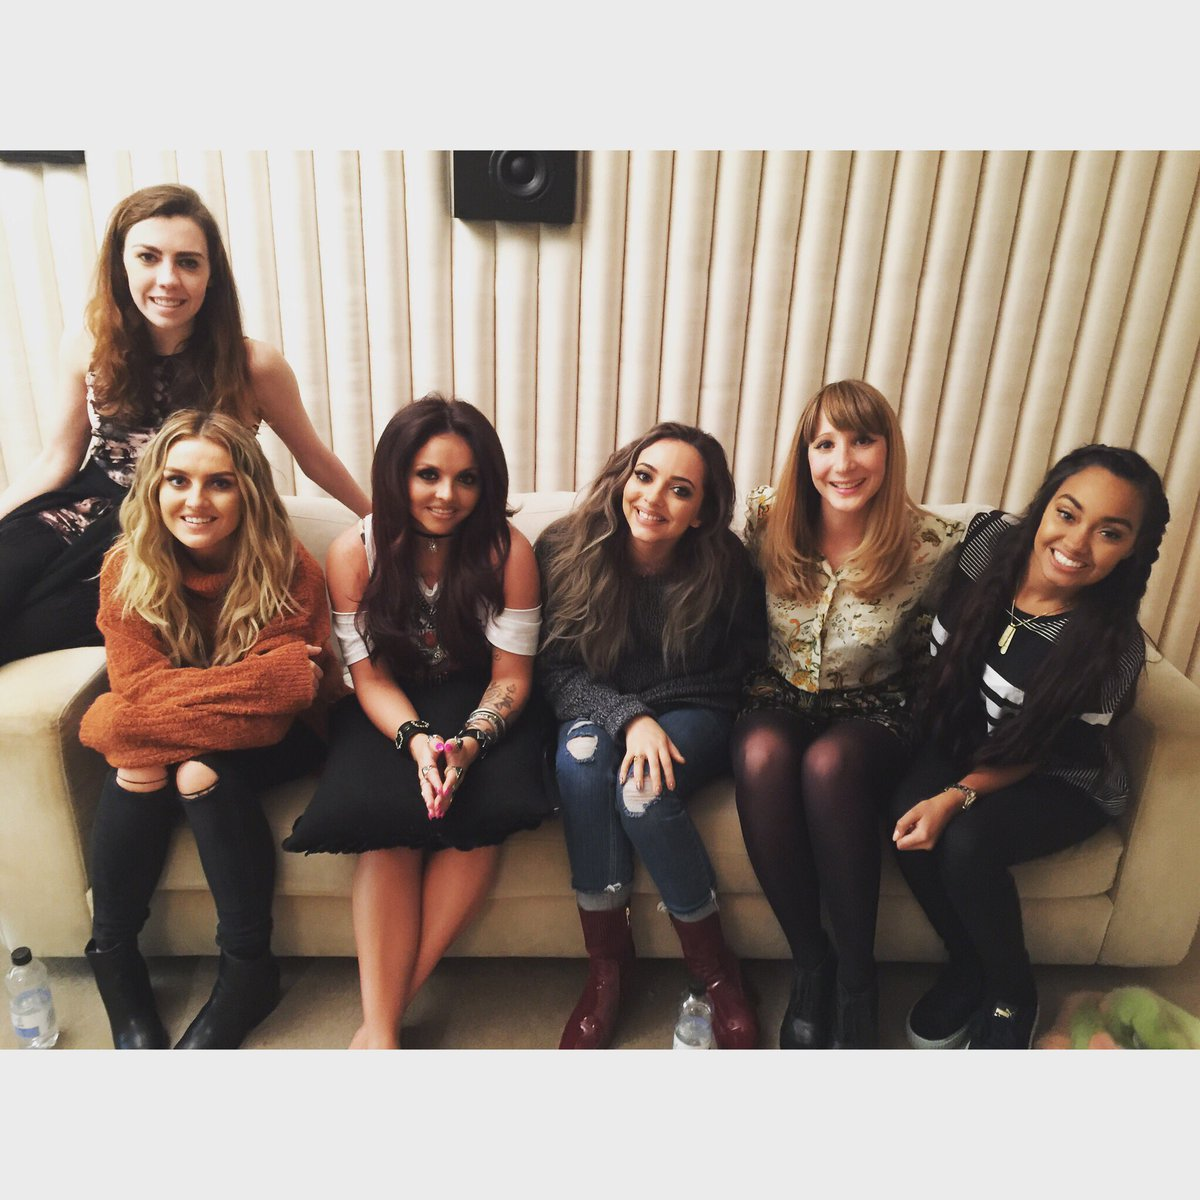 Not going to lie.... I want to be the honorary fifth member of Little Mix ✌